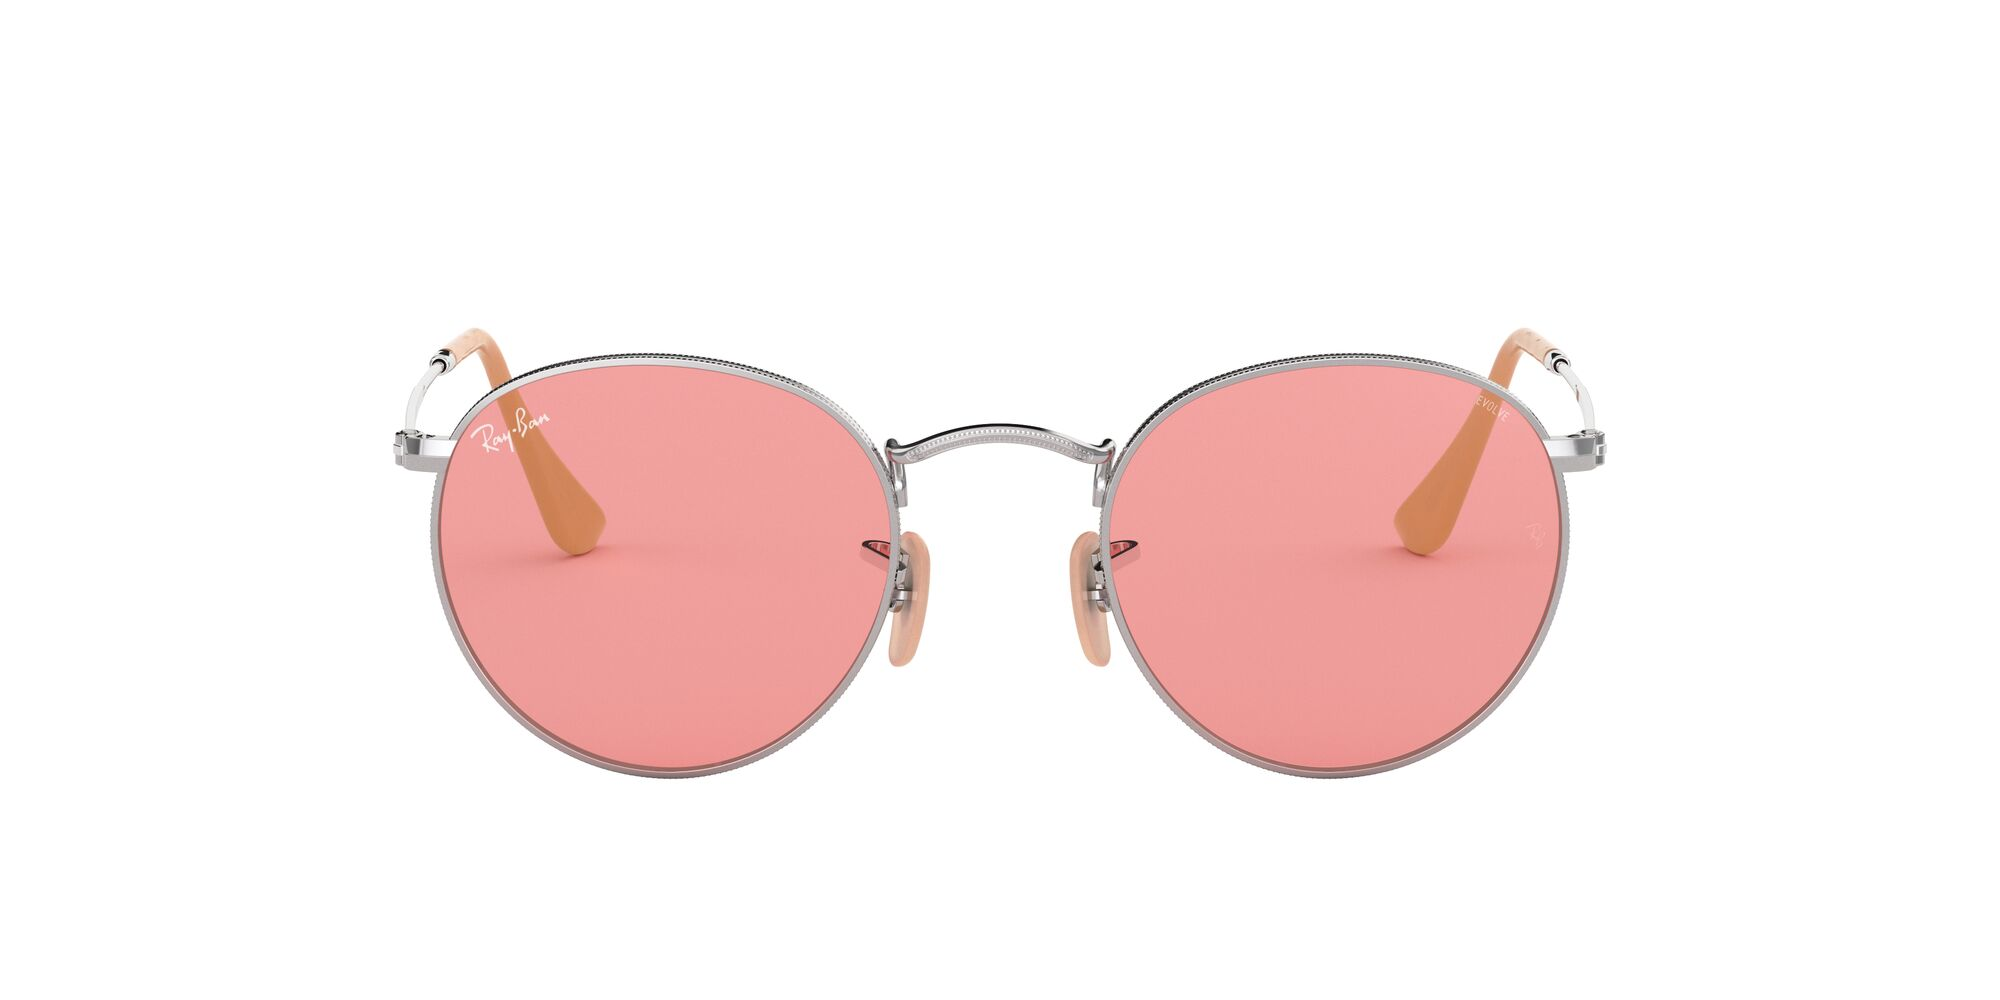 Front Ray-Ban Ray-Ban 0RB3447 9065V7 53/21 Zilver/Roze